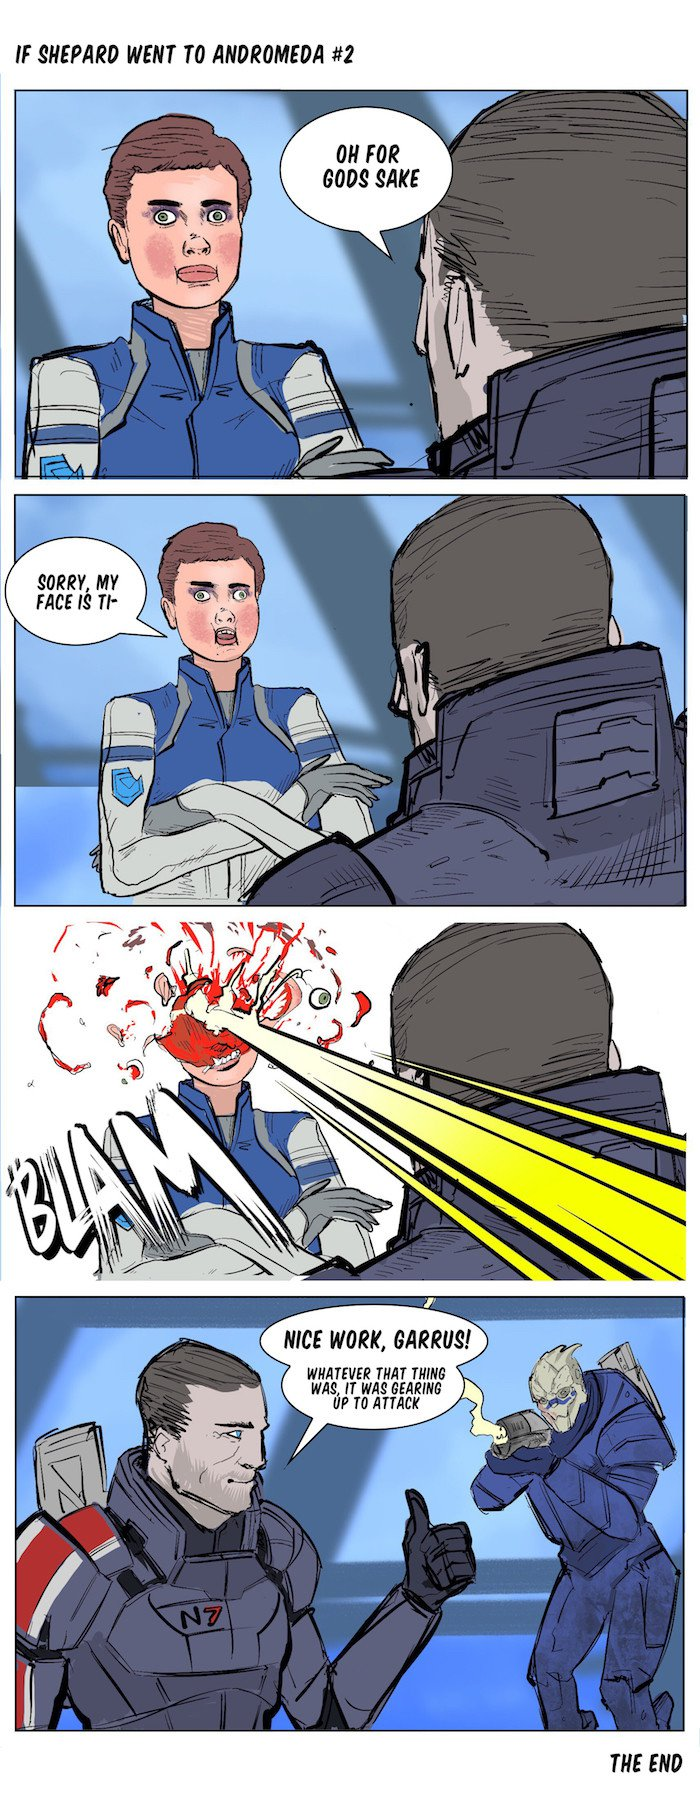 if shepard went to andromeda #2 - Mass Effect: Andromeda